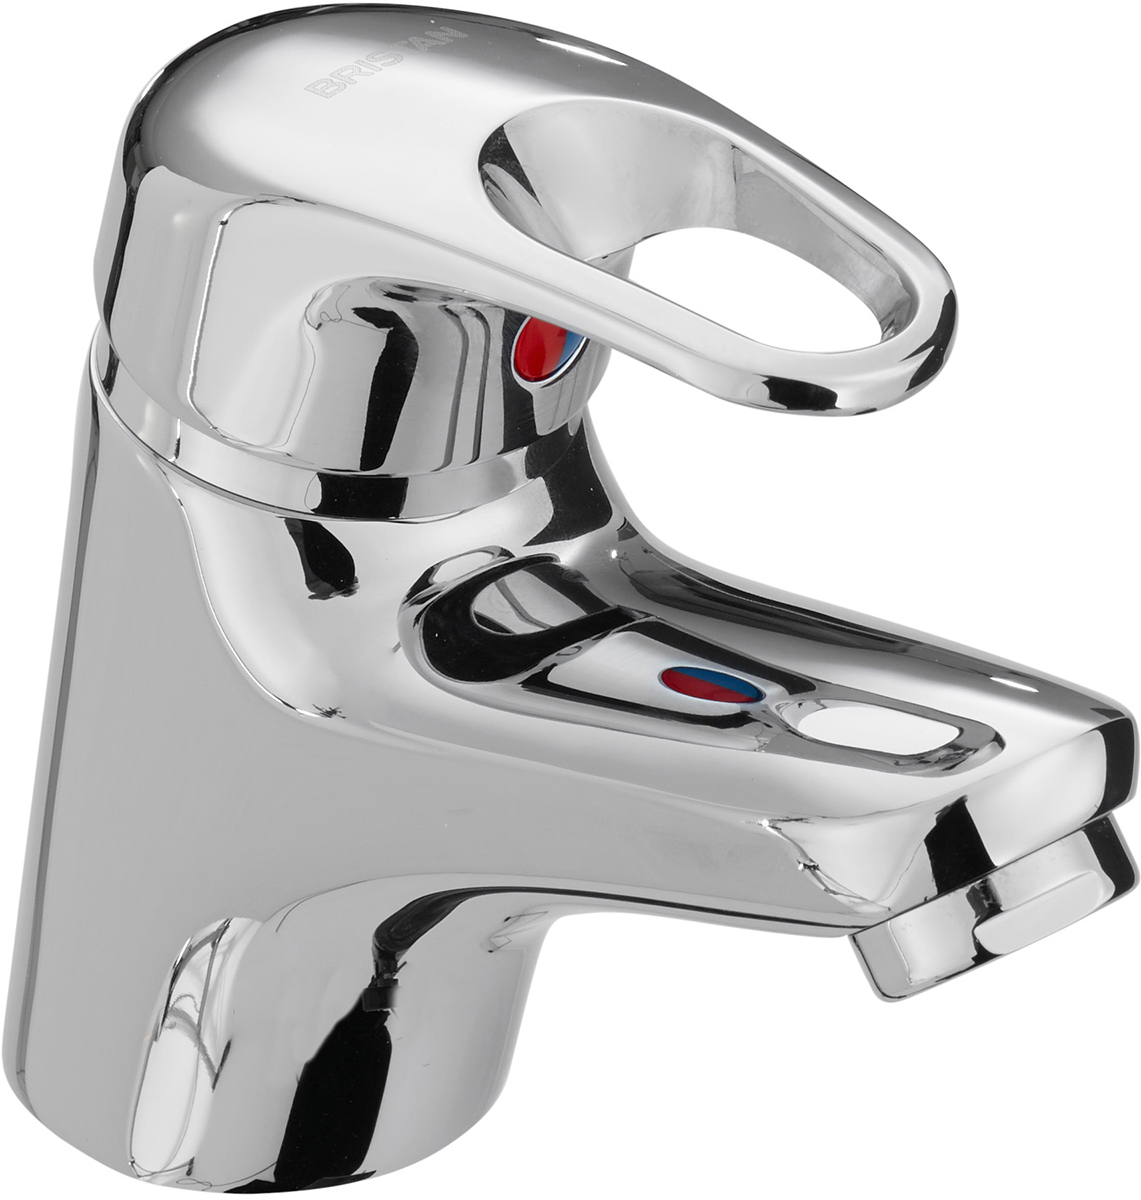 Basin Mixer with Clicker Waste